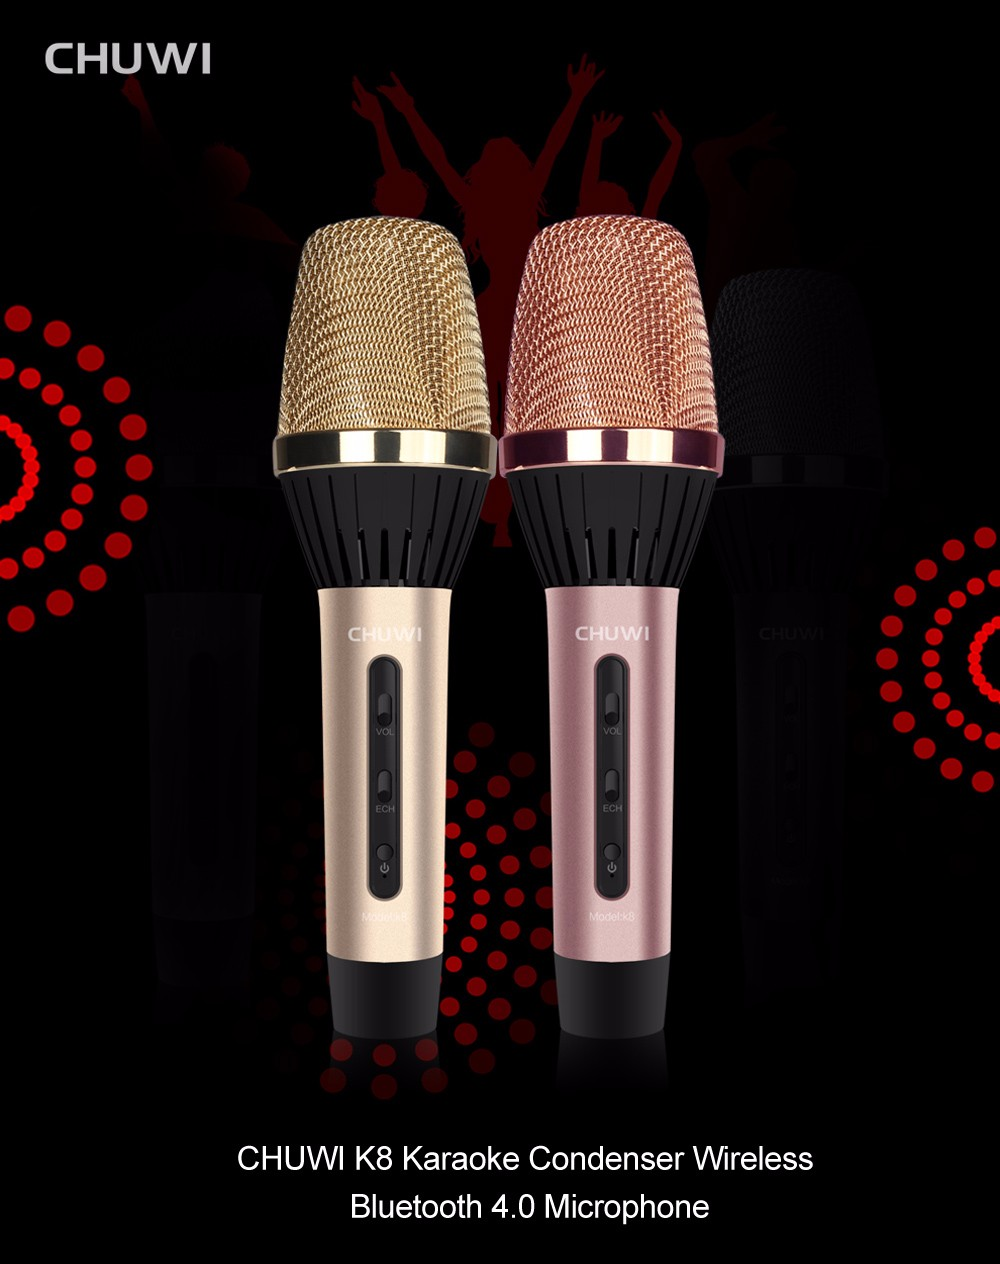 CHUWI K8 Karaoke Condenser Wireless Bluetooth 4.0 Microphone Supporting Volume Control